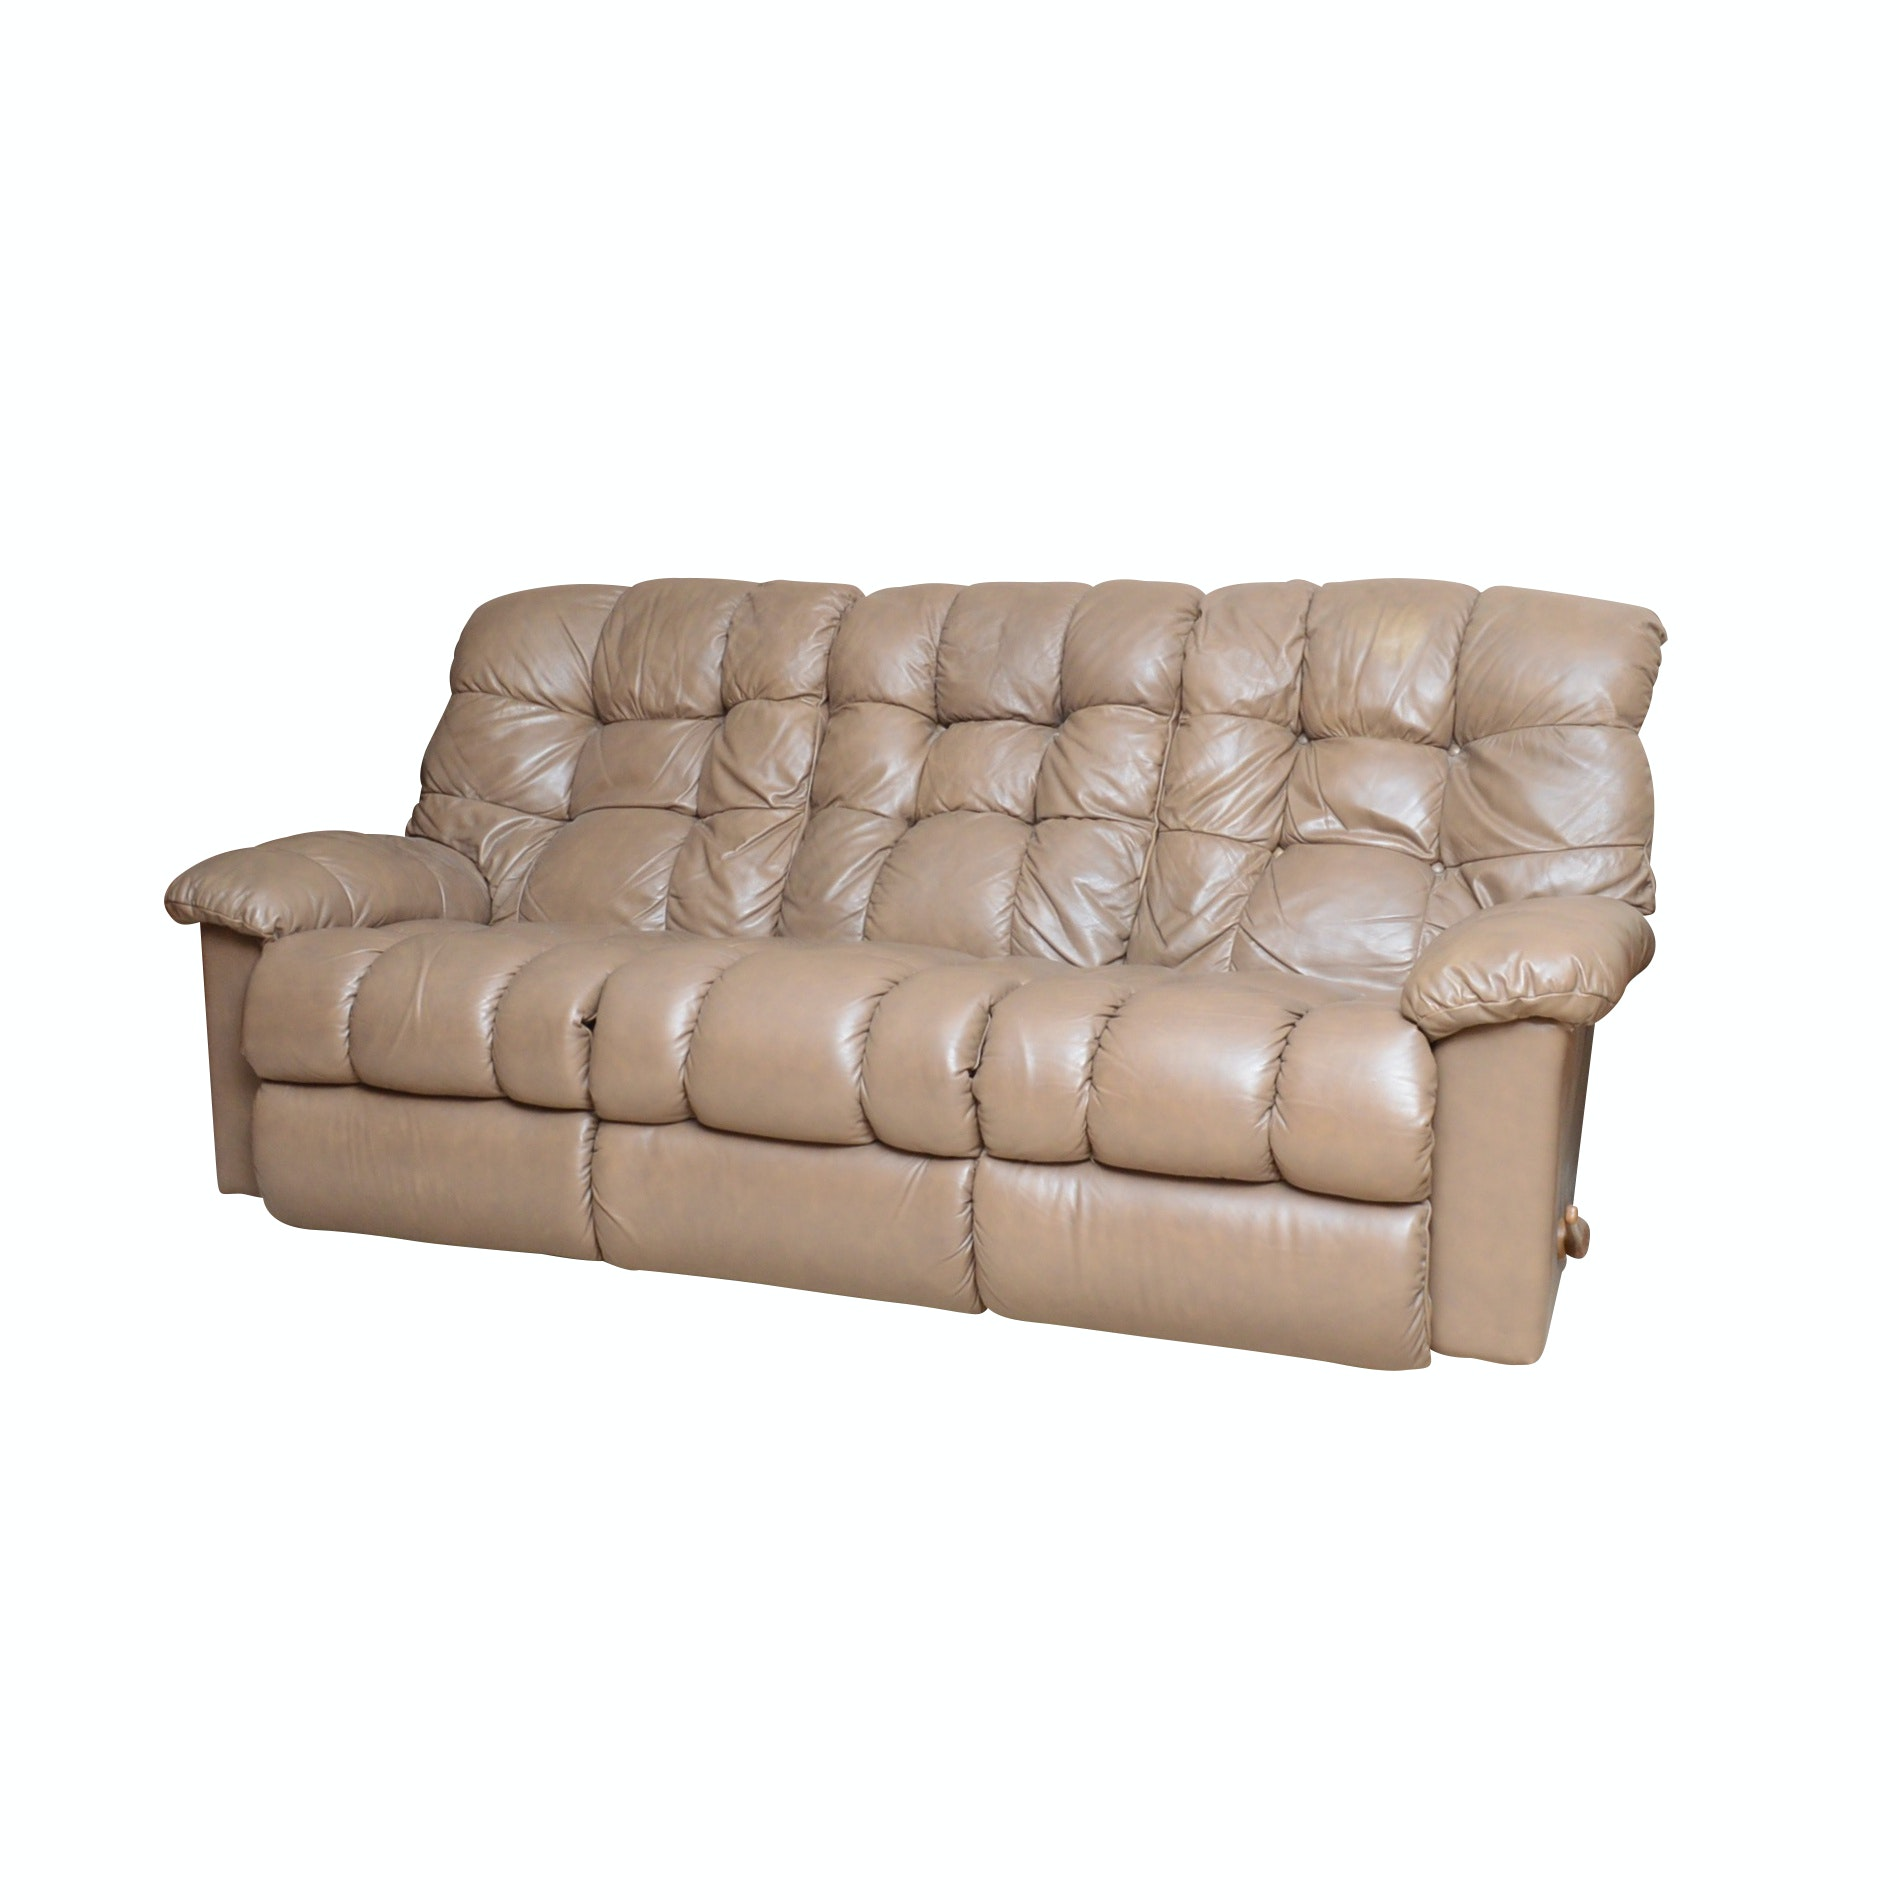 La-Z-Boy Tufted Back Leather Sofa with Dual End Recliners